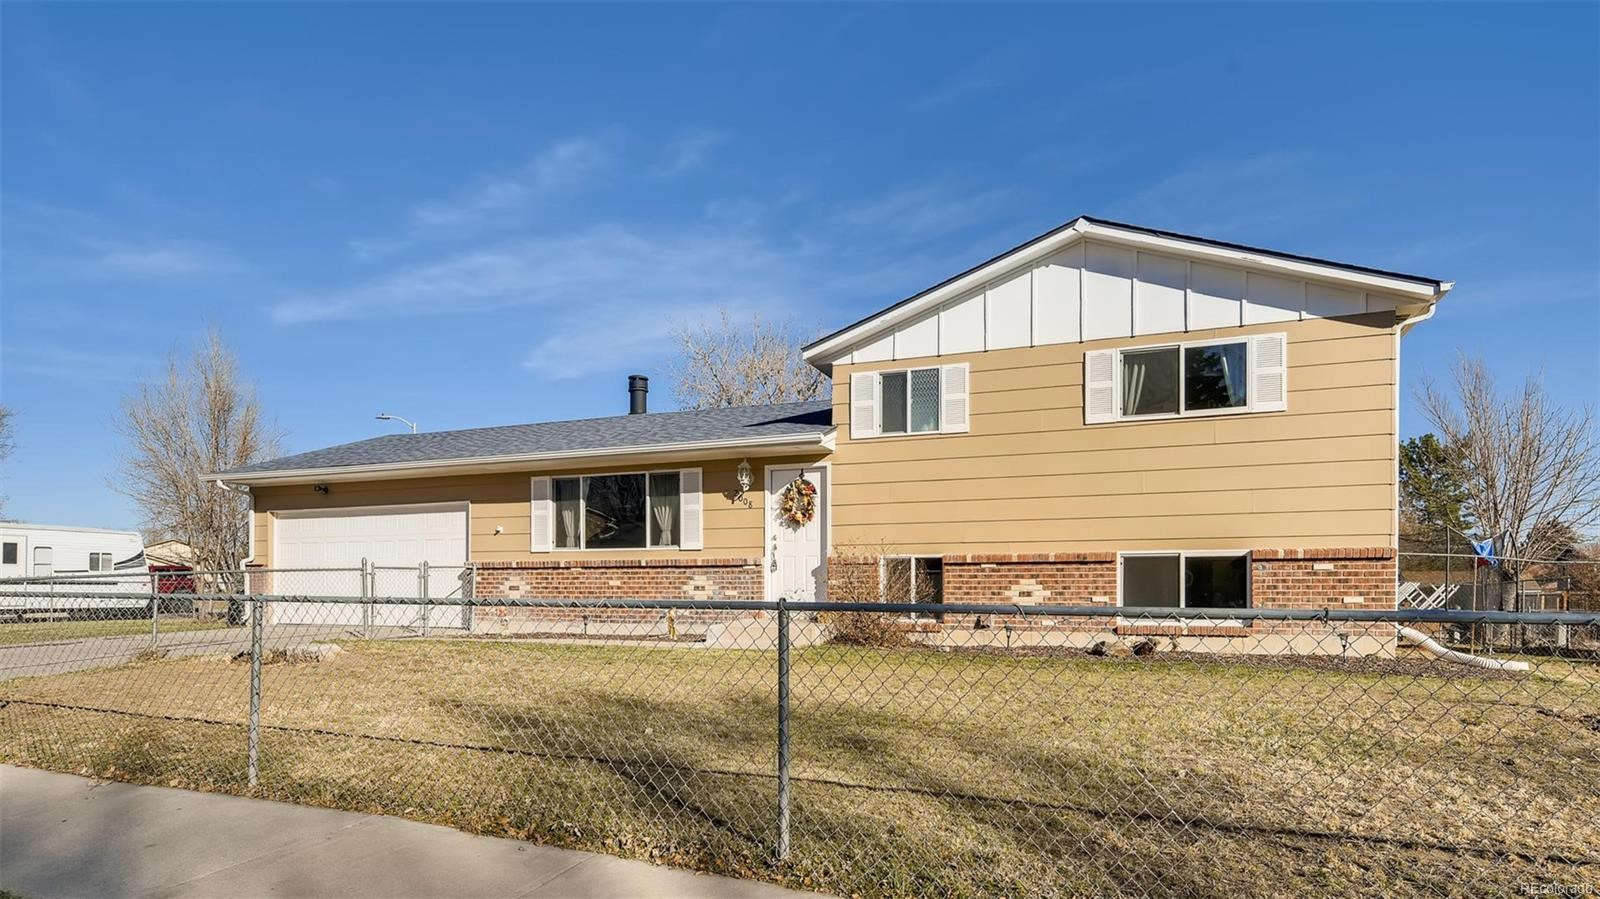 MLS# 7908993 - 1 - 2008  El Camino Meseta, Fountain, CO 80817